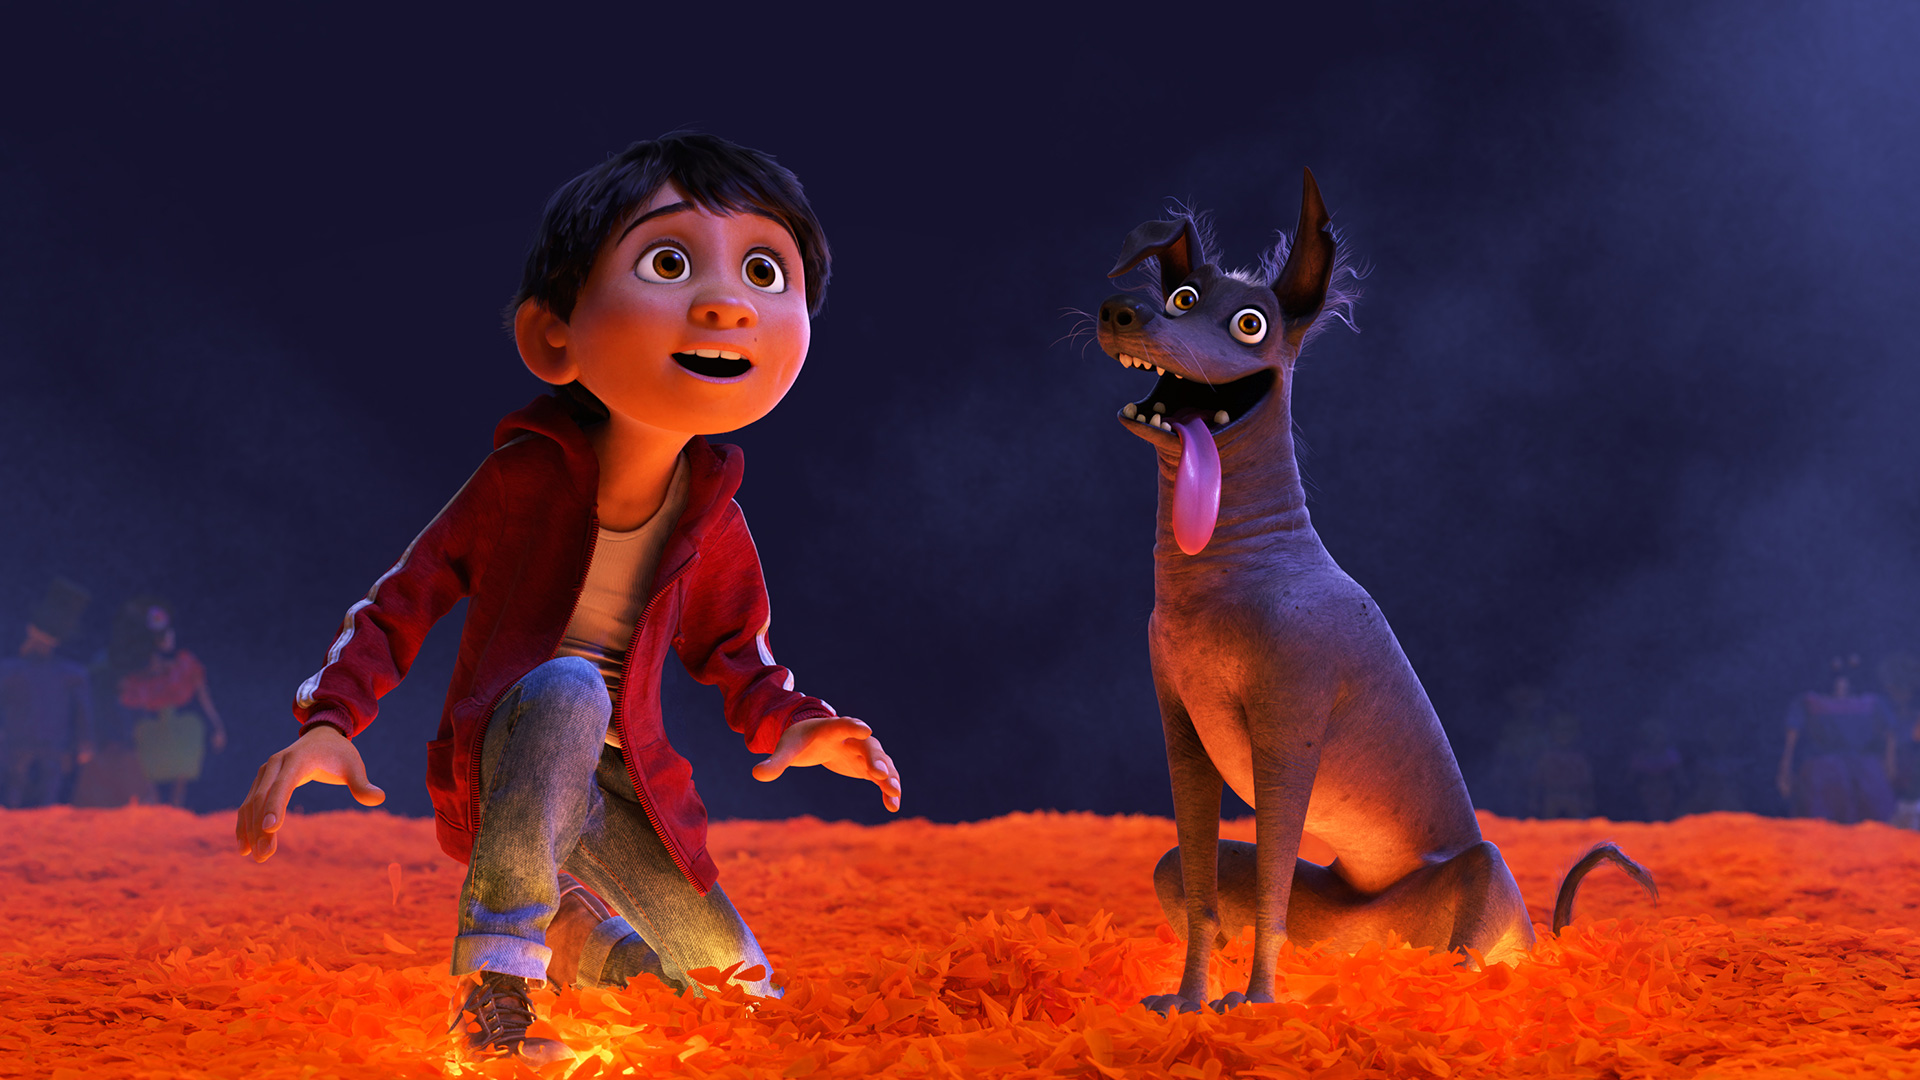 Pixar Coco Movie Wallpapers New HD Wallpapers